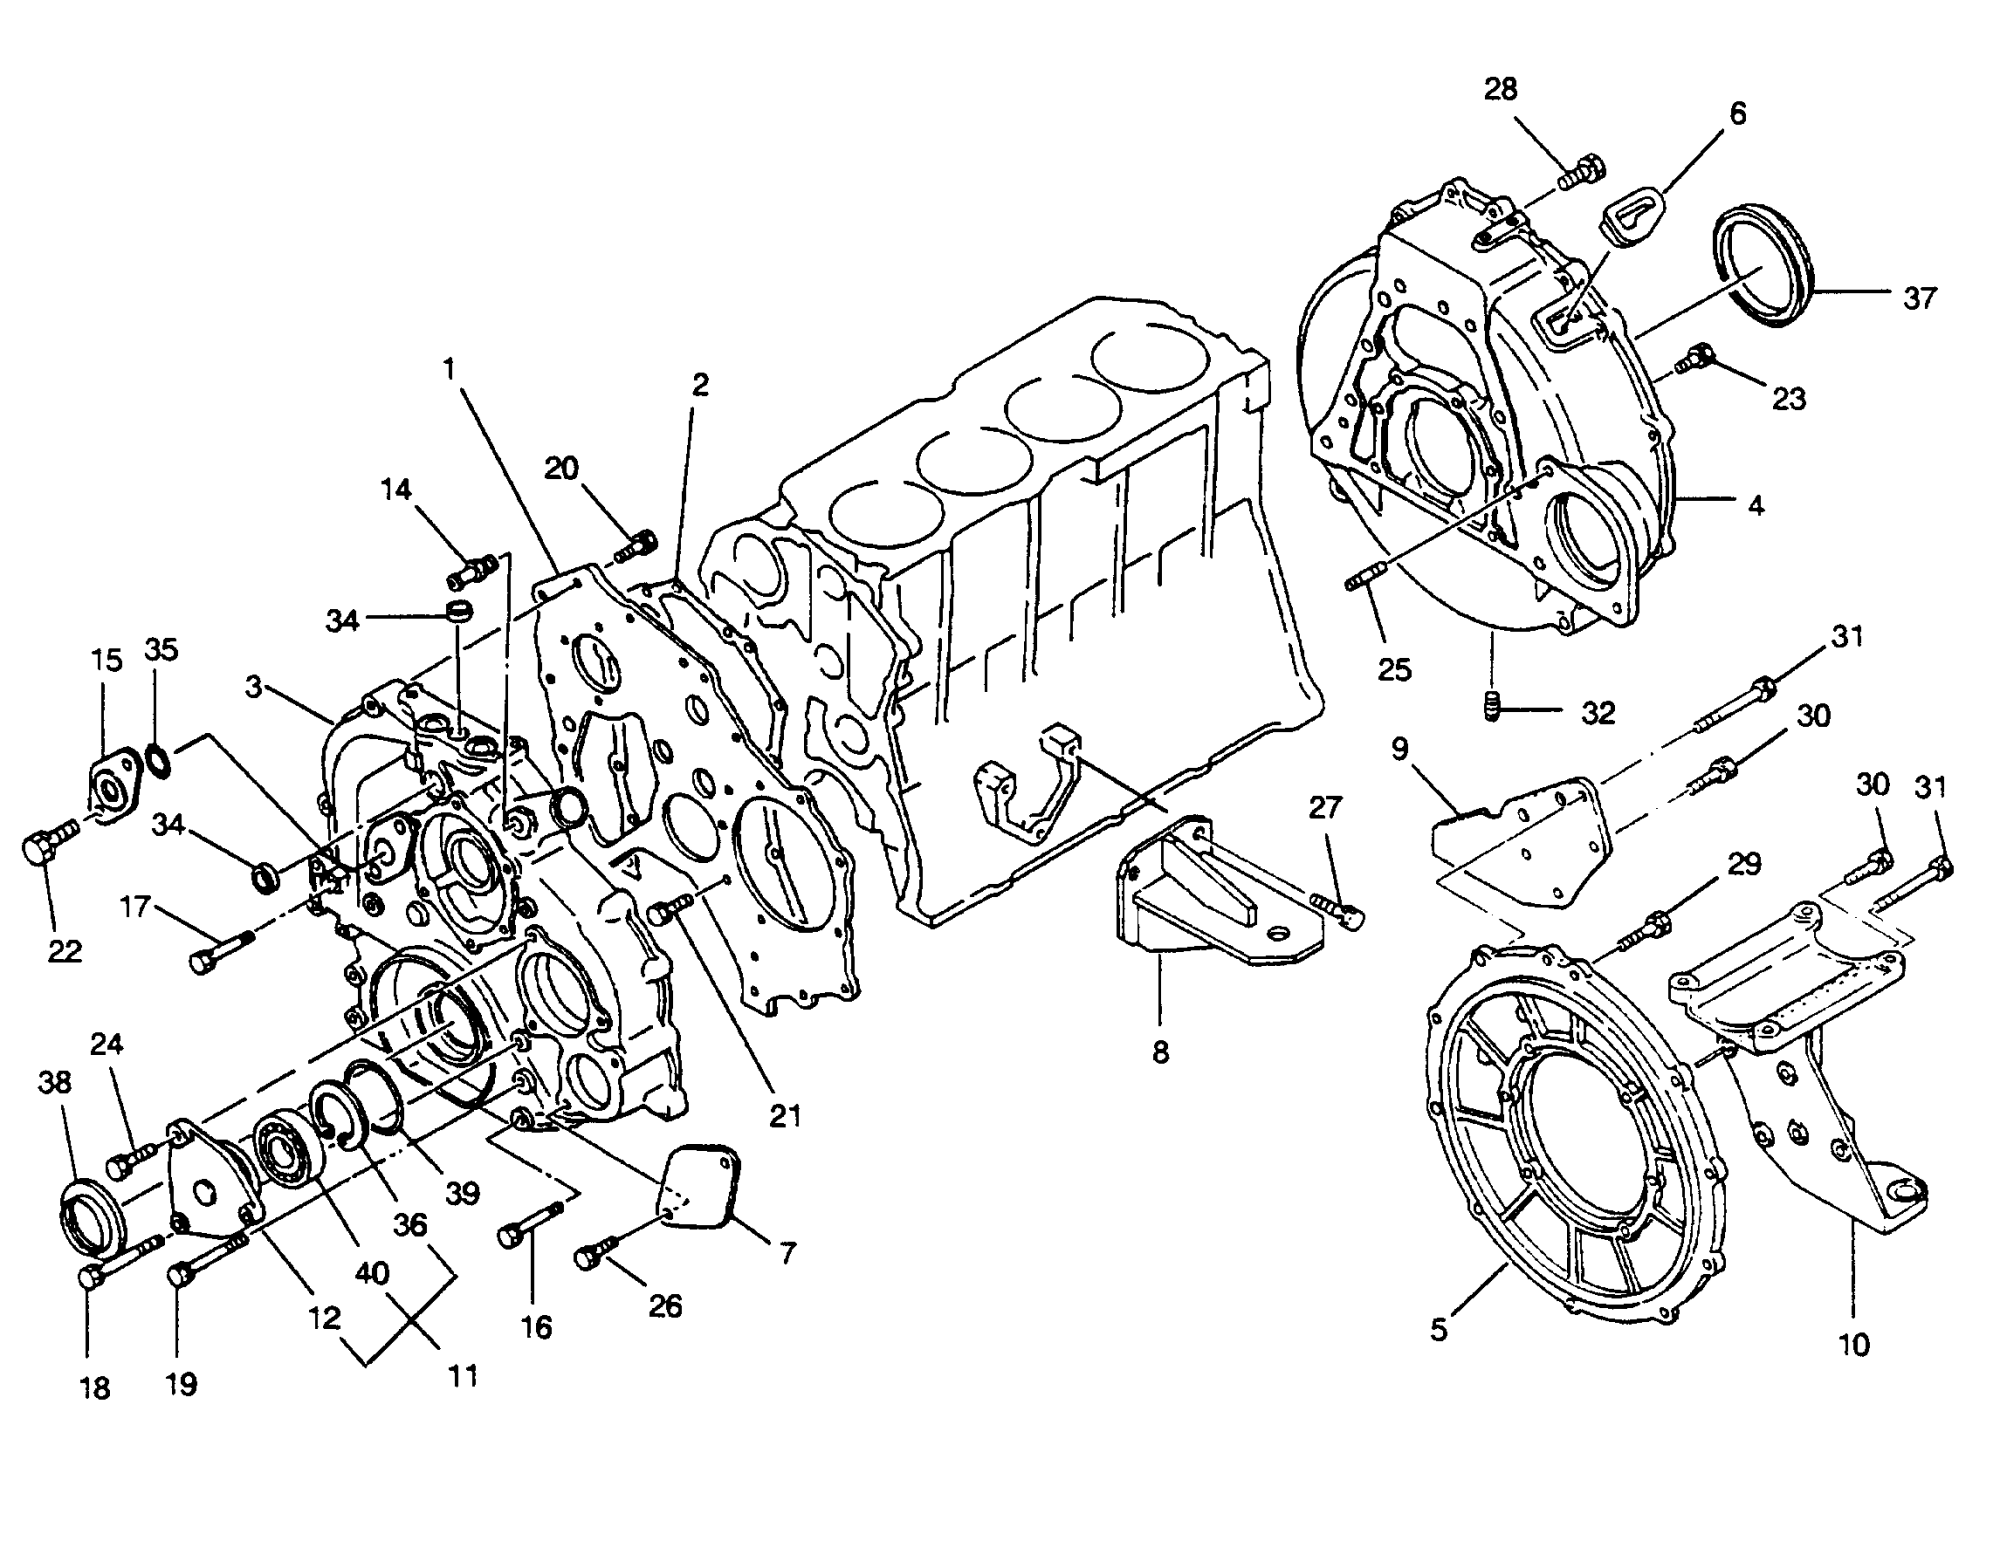 hight resolution of mercury u s marine hino diesel see mercruiser wo4cti 210 h p 4 cyl timing cover and flywheel housing